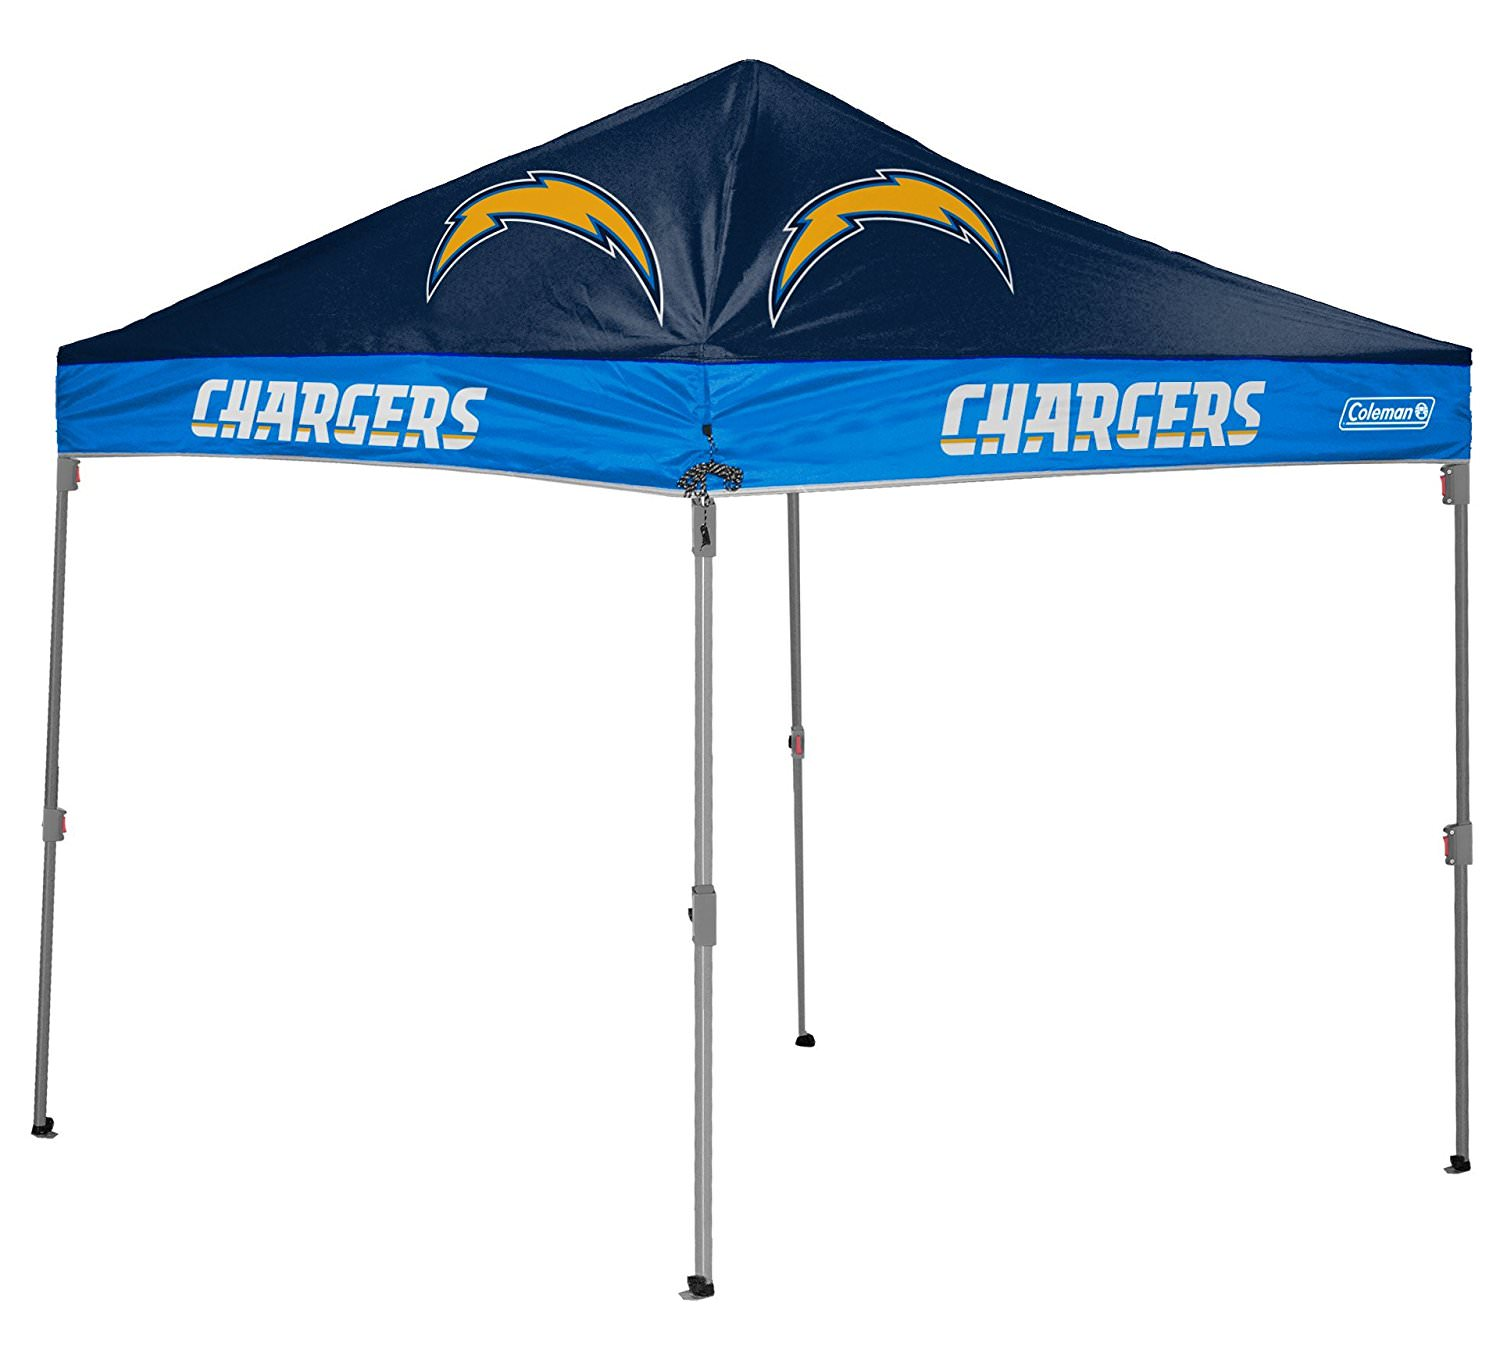 Coleman San Diego Chargers 10' x 10' Straight-Leg Canopy